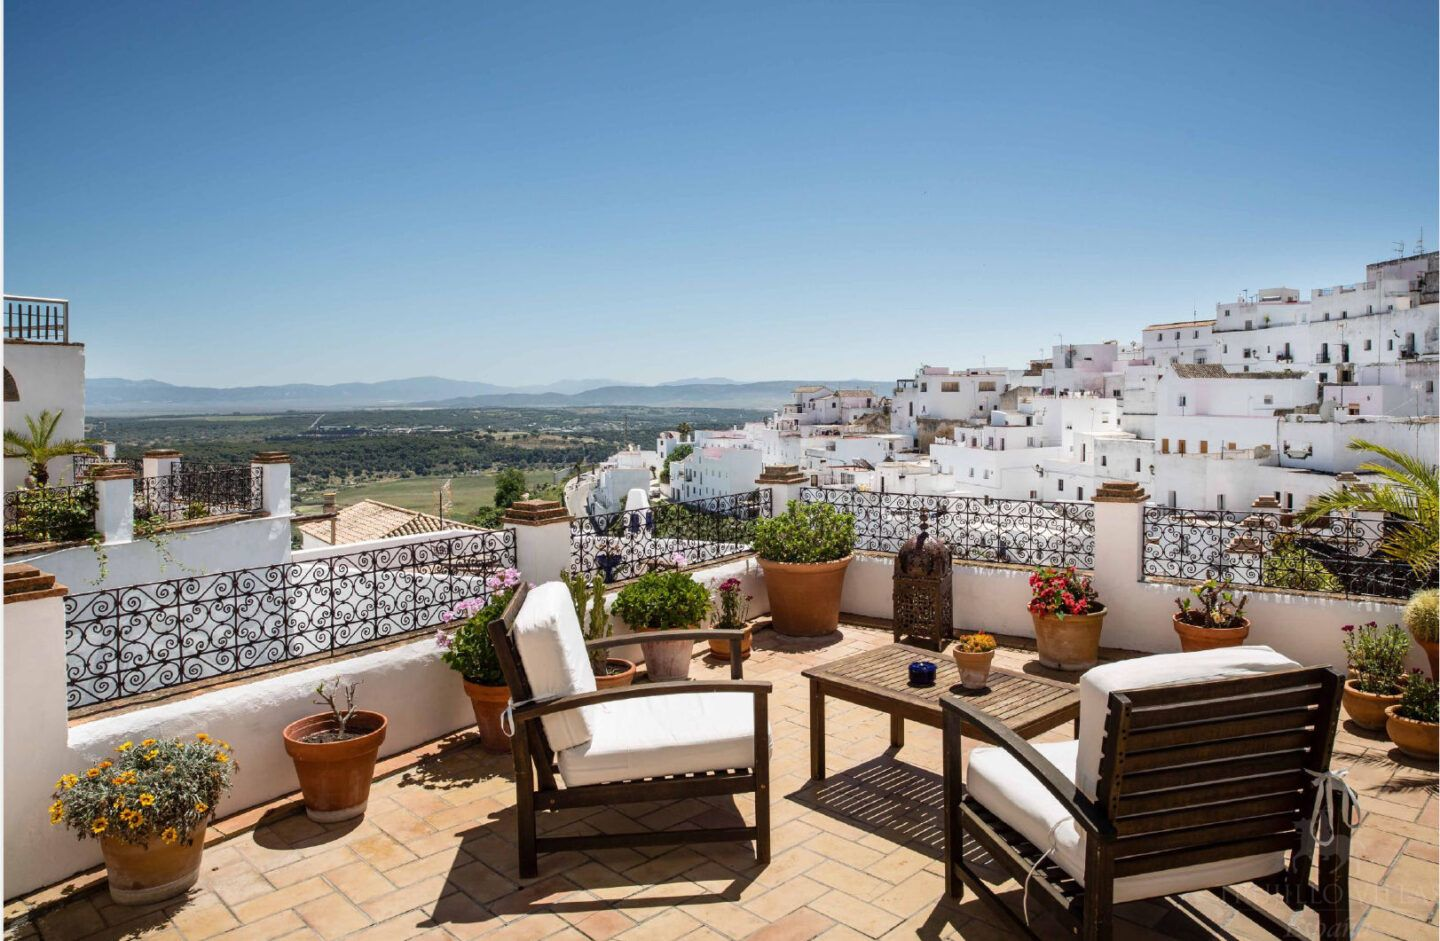 The 50 best holidays in Spain from The Times